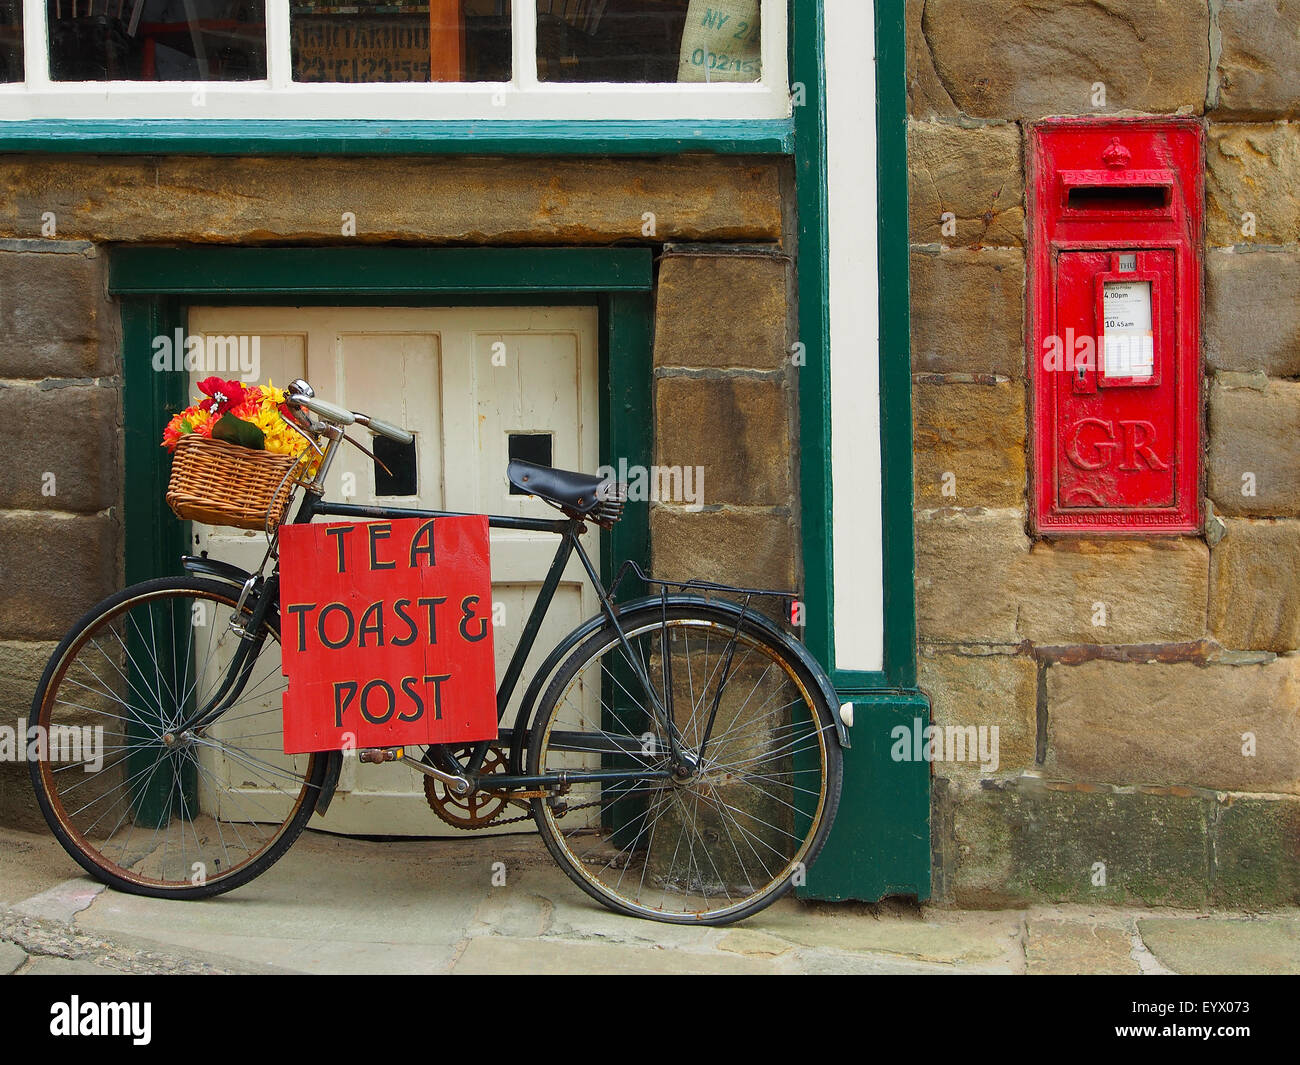 bicycle-sign-advertising-tea-toast-and-p